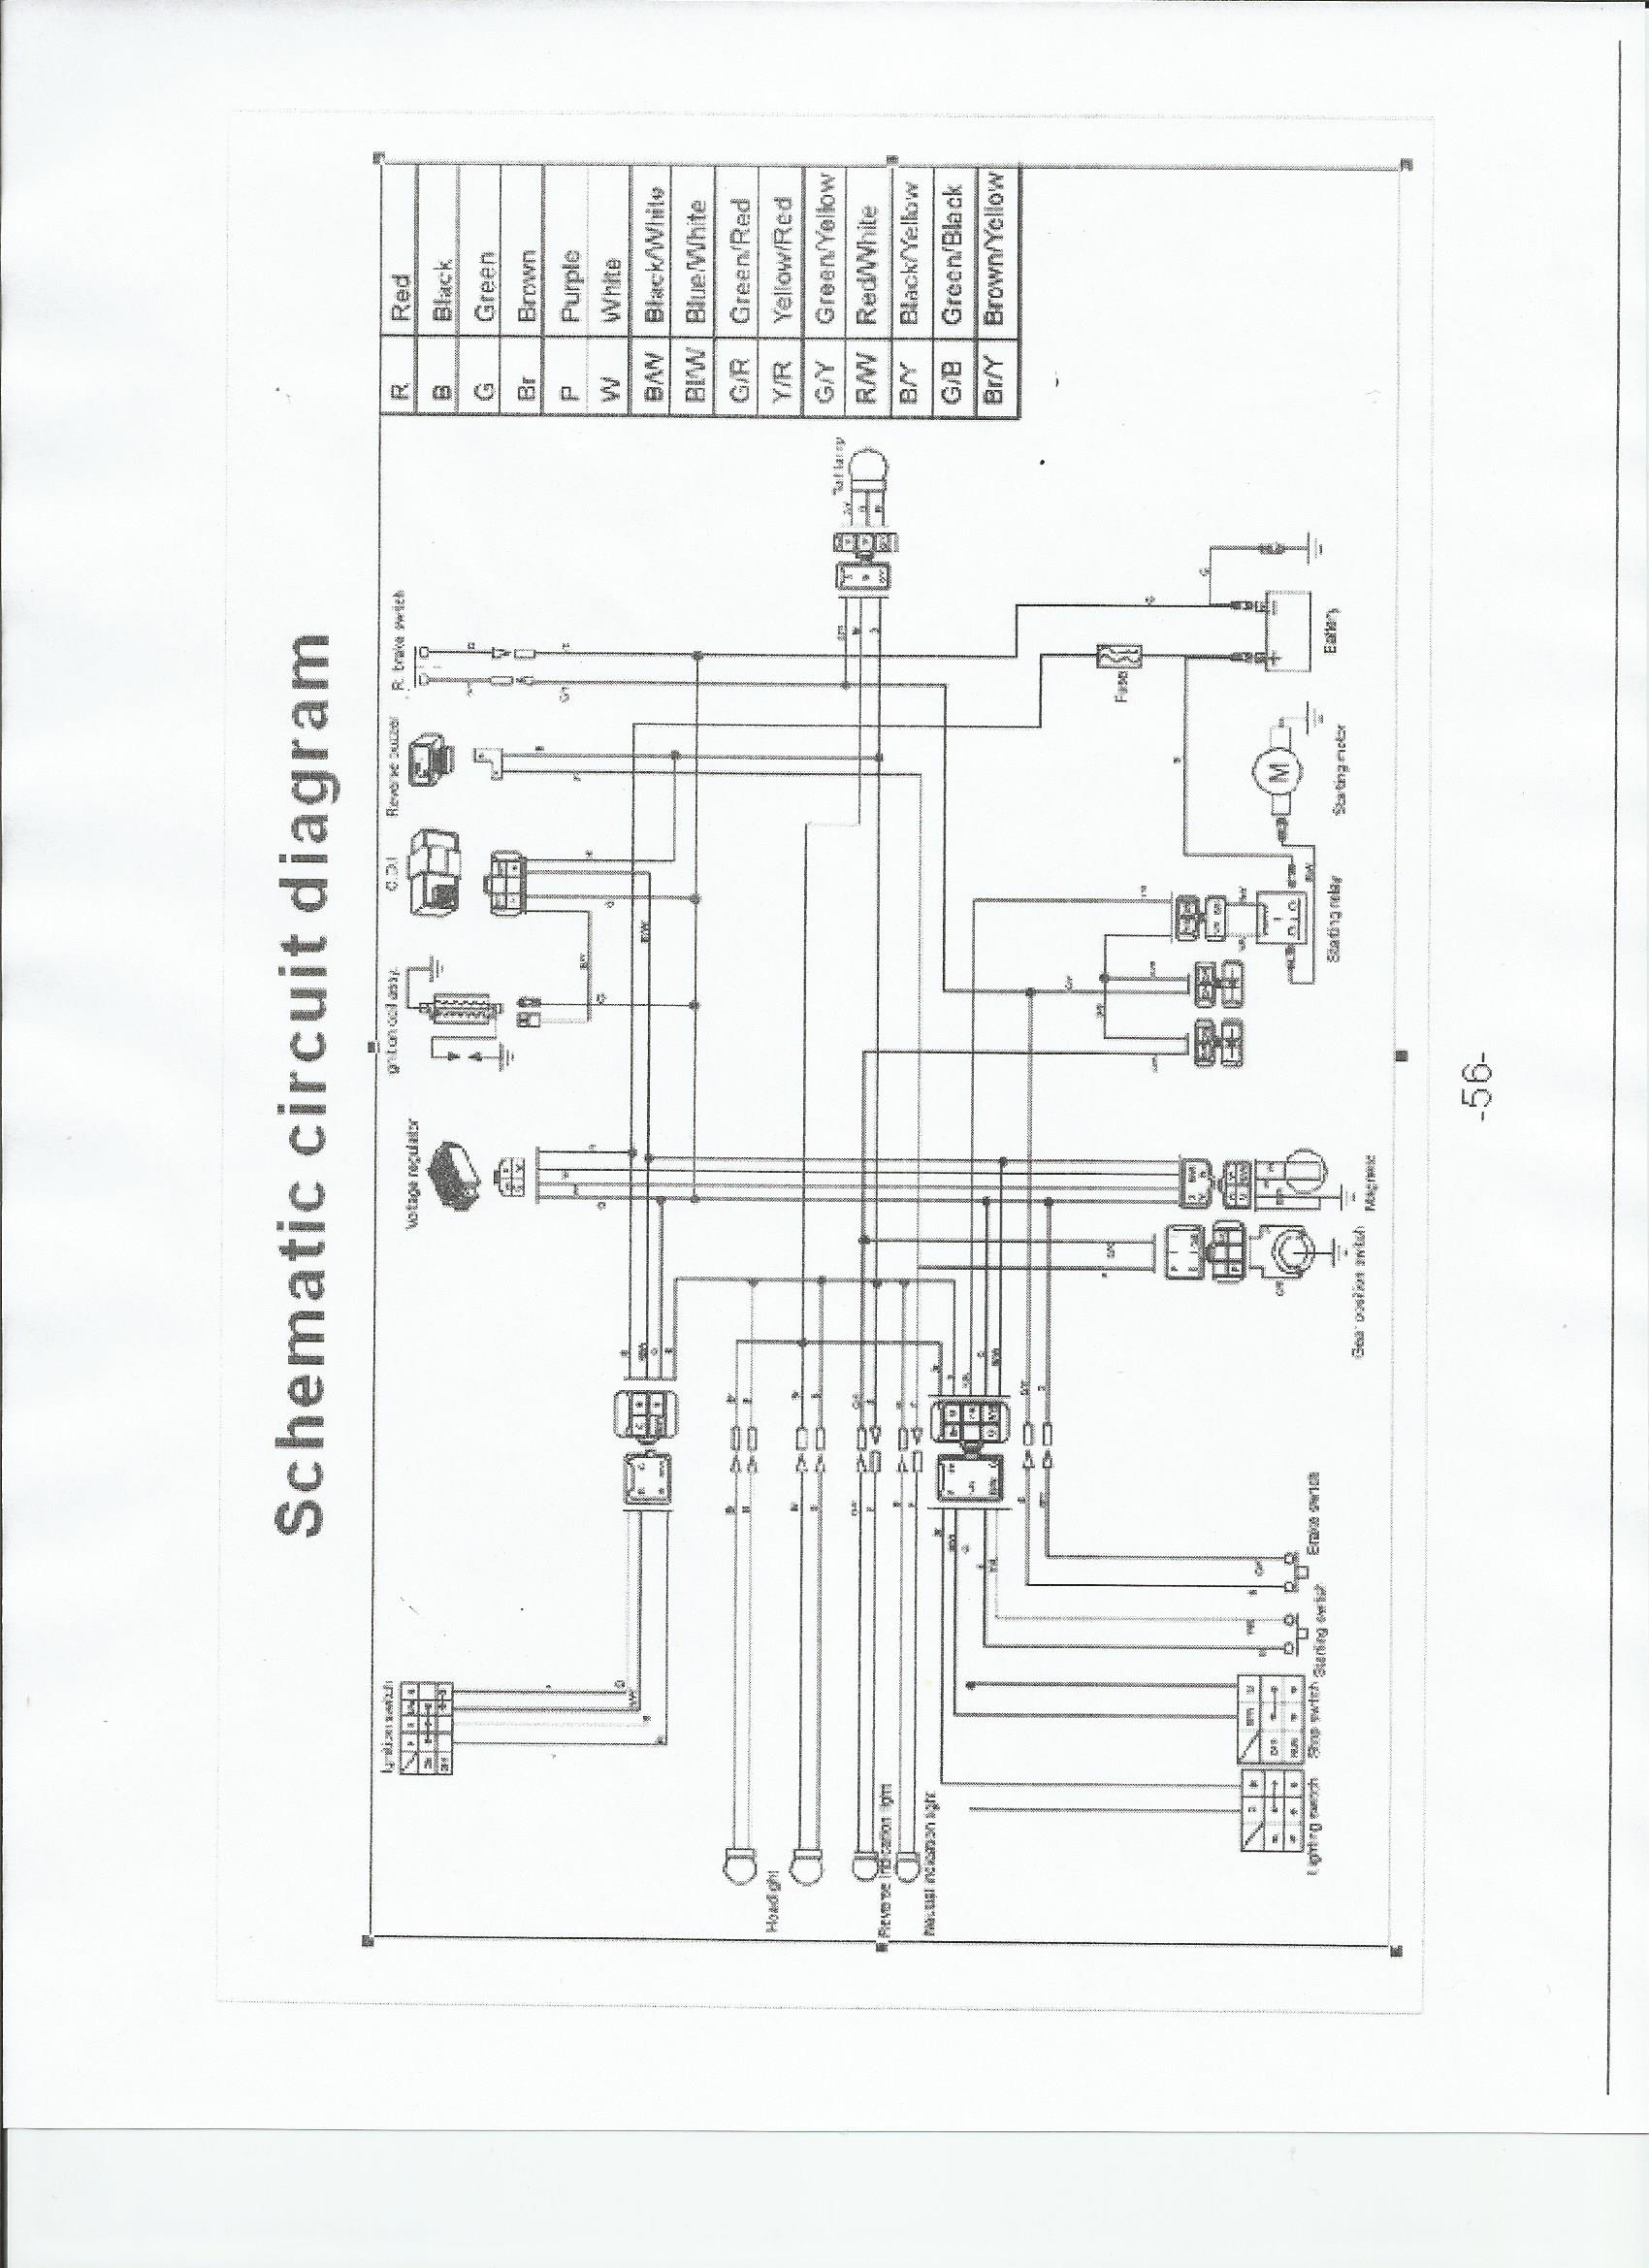 150cc gy6 scooter wiring diagram discovery 2 ace fuel diagrams images